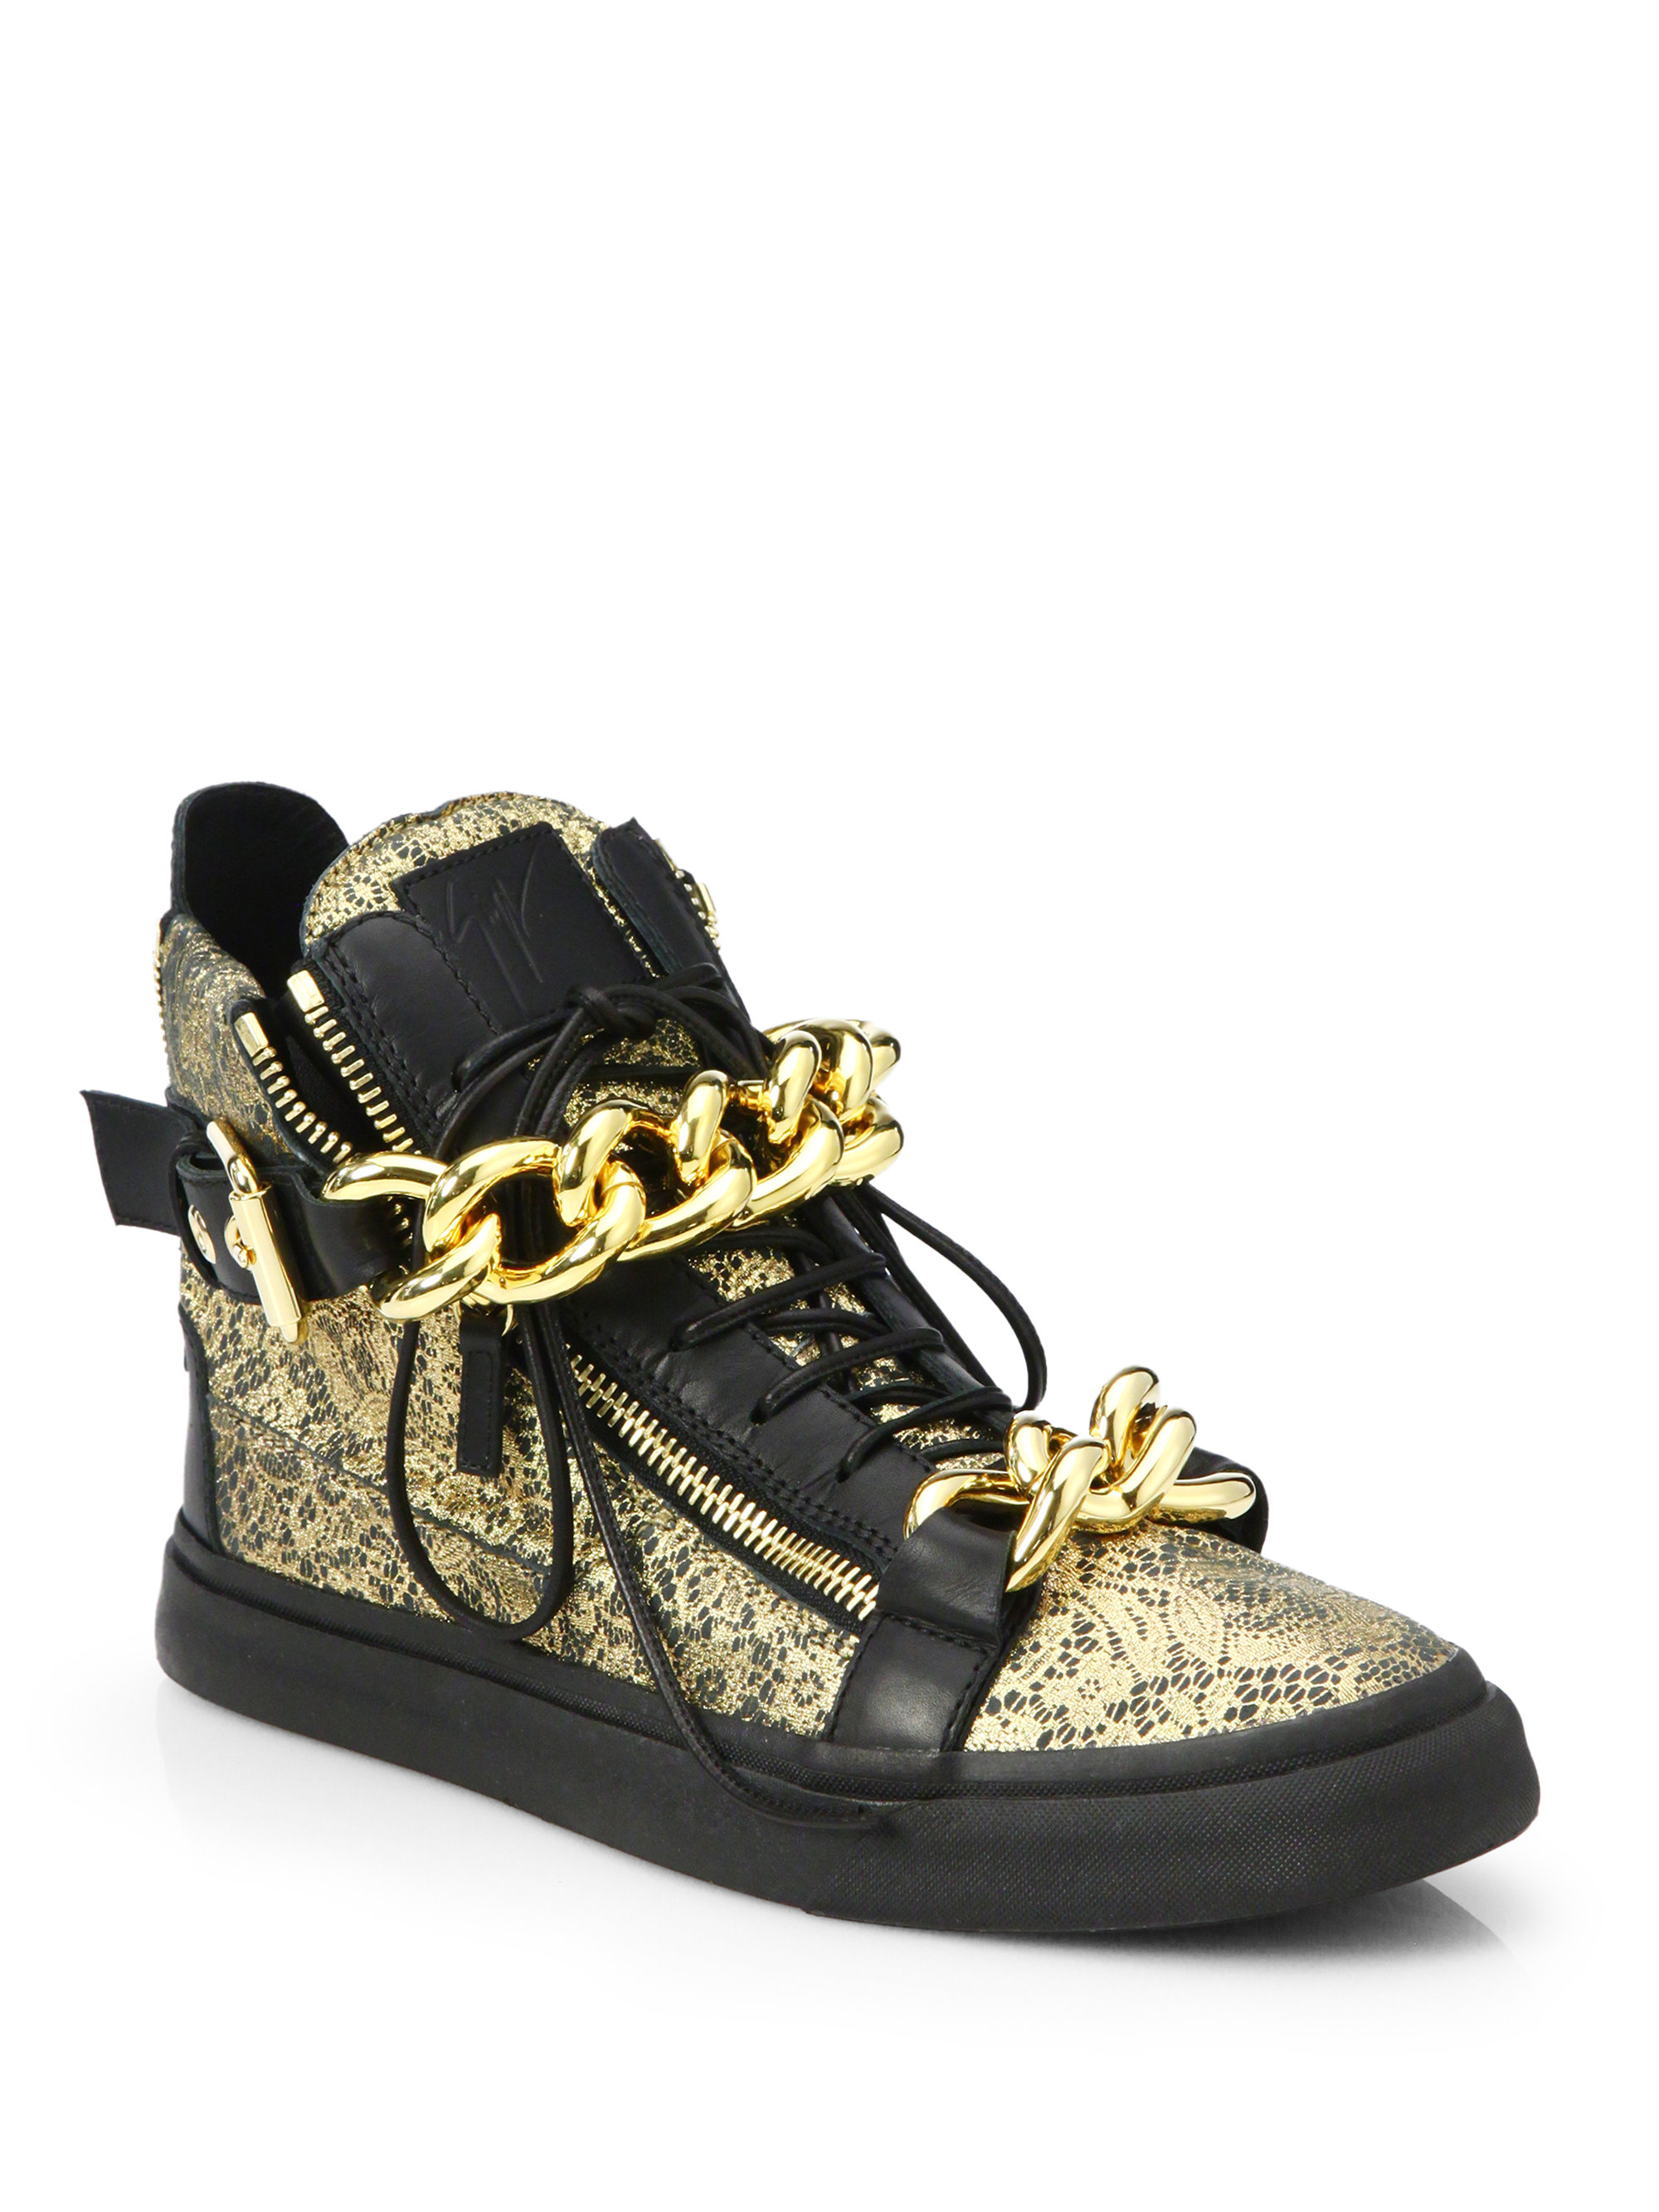 giuseppe zanotti double chain metallic lace printed leather high top sneakers in metallic for. Black Bedroom Furniture Sets. Home Design Ideas